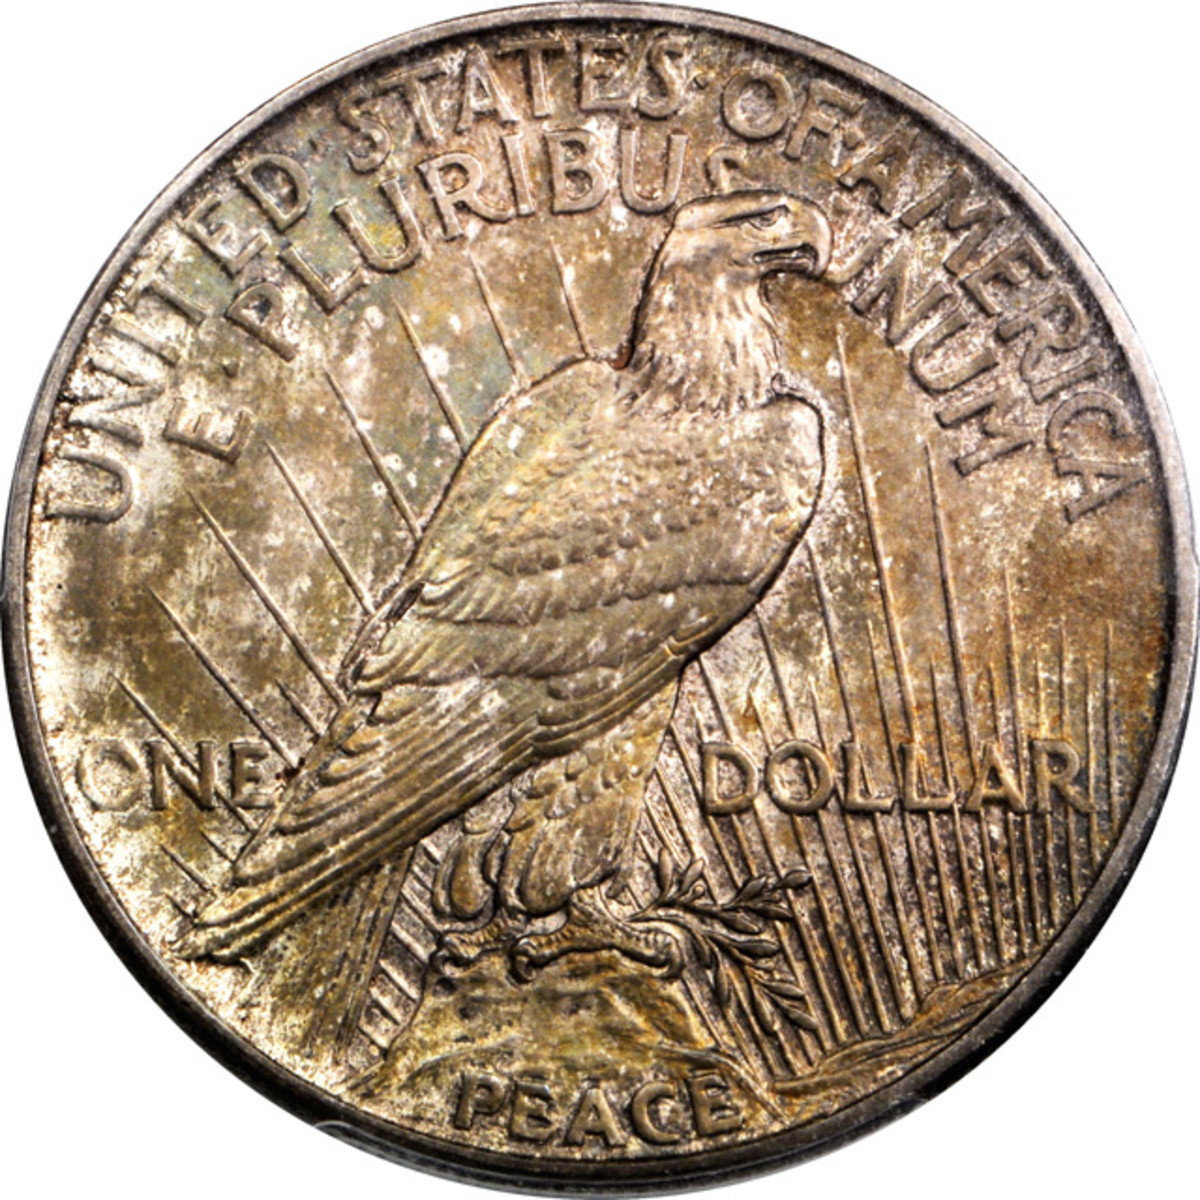 Lot 13167. 1922 Peace silver dollar. Modified High Relief Production Trial. Judd-2020. PCGS Proof-67. Satin Finish. Ex: Raymond T. Baker Estate.